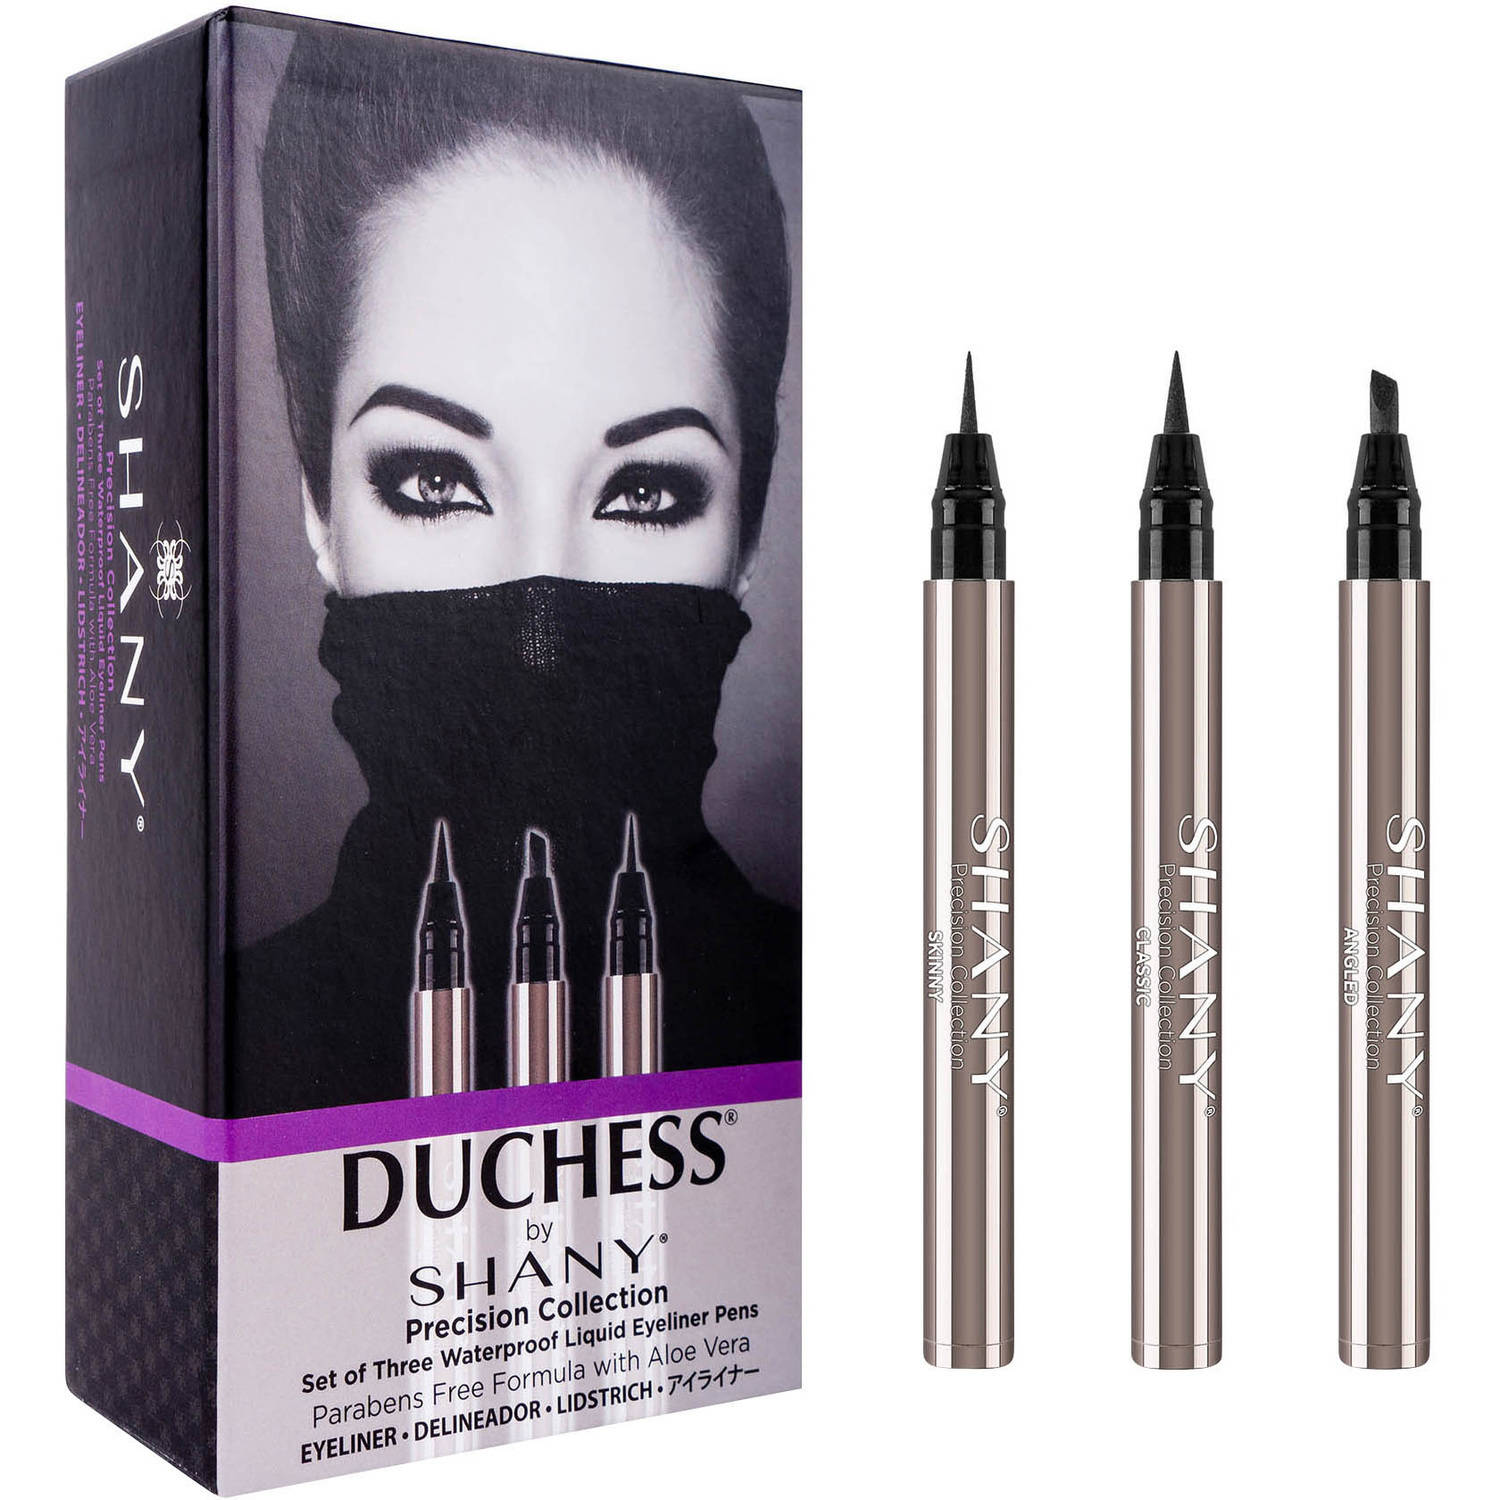 Duchess by SHANY Precision Collection Waterproof Liquid Eyeliner Pens, 3 count